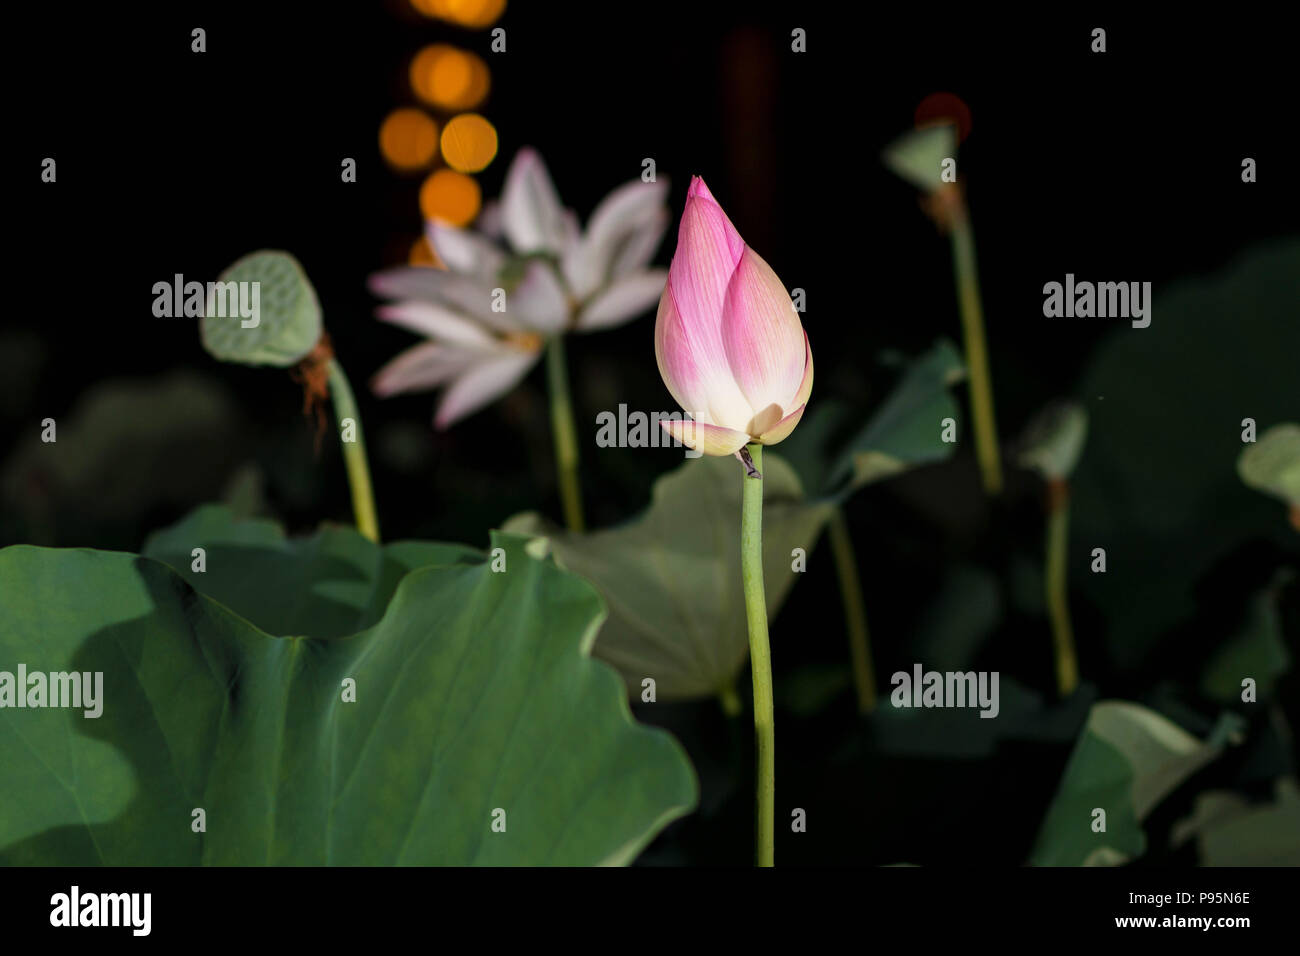 Lotus Flowers In The Night Stock Photo 212182726 Alamy